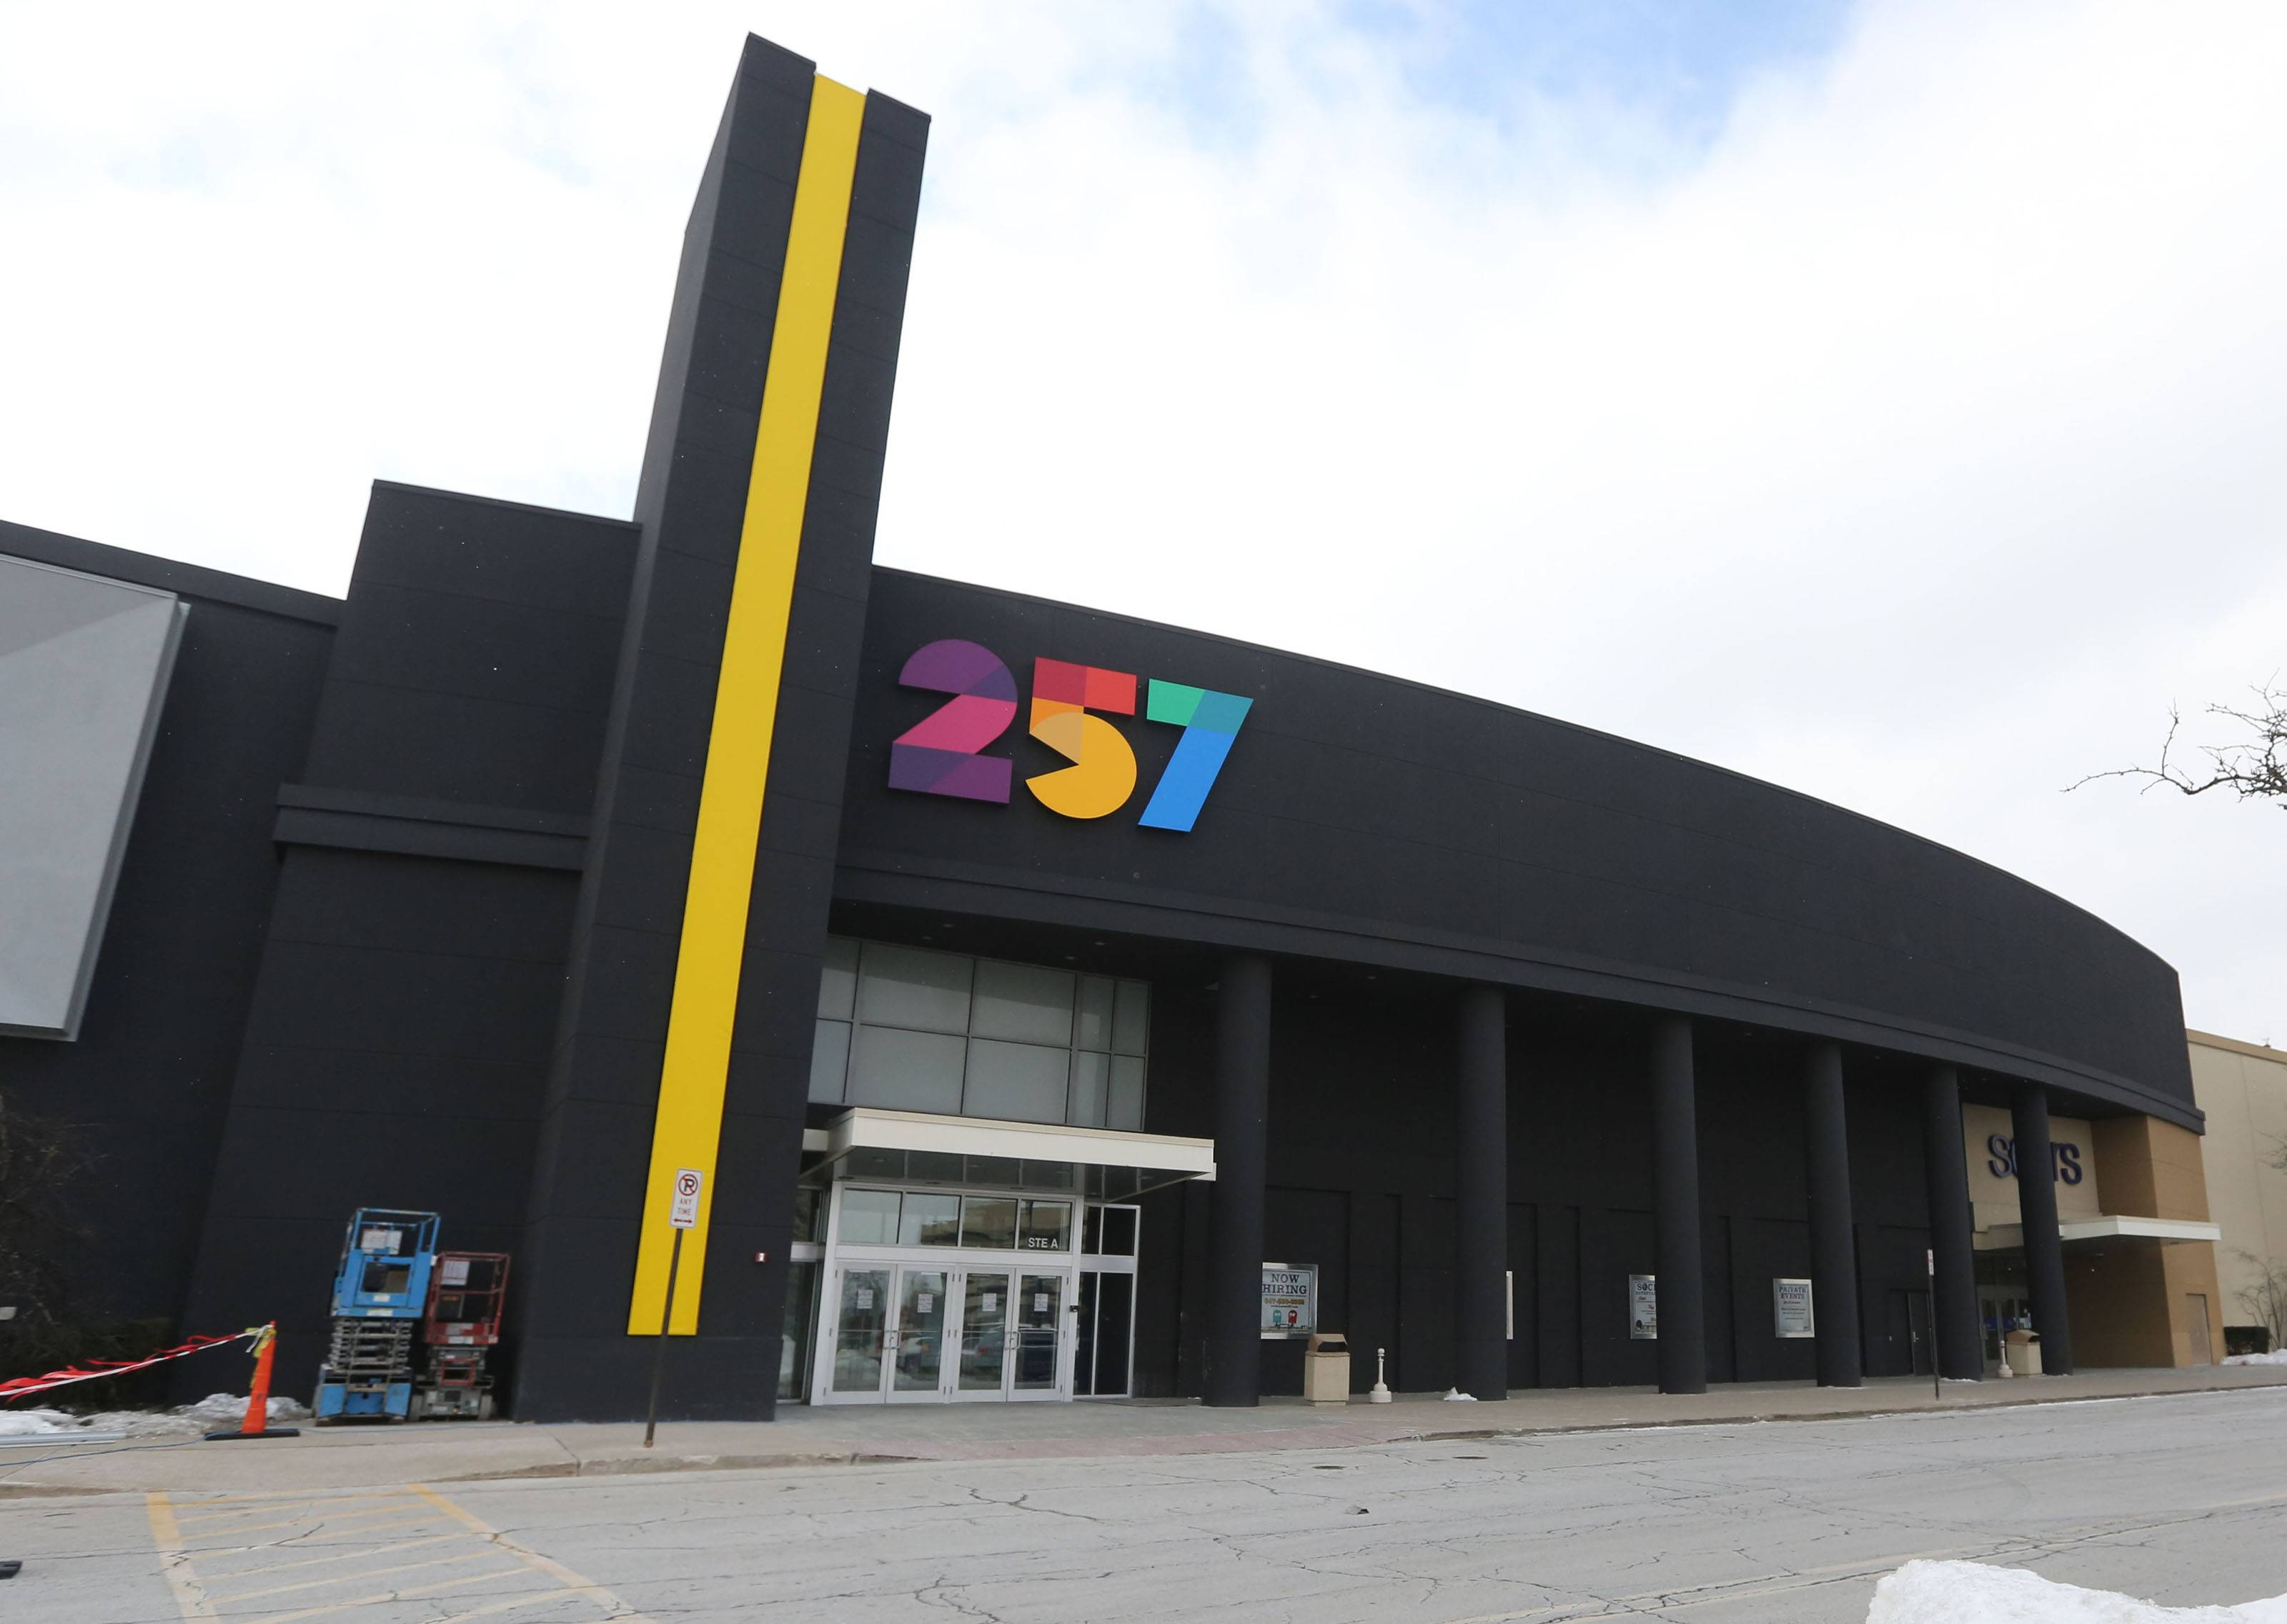 Former sports stars highlight grand opening celebration of Level 257 in Schaumburg